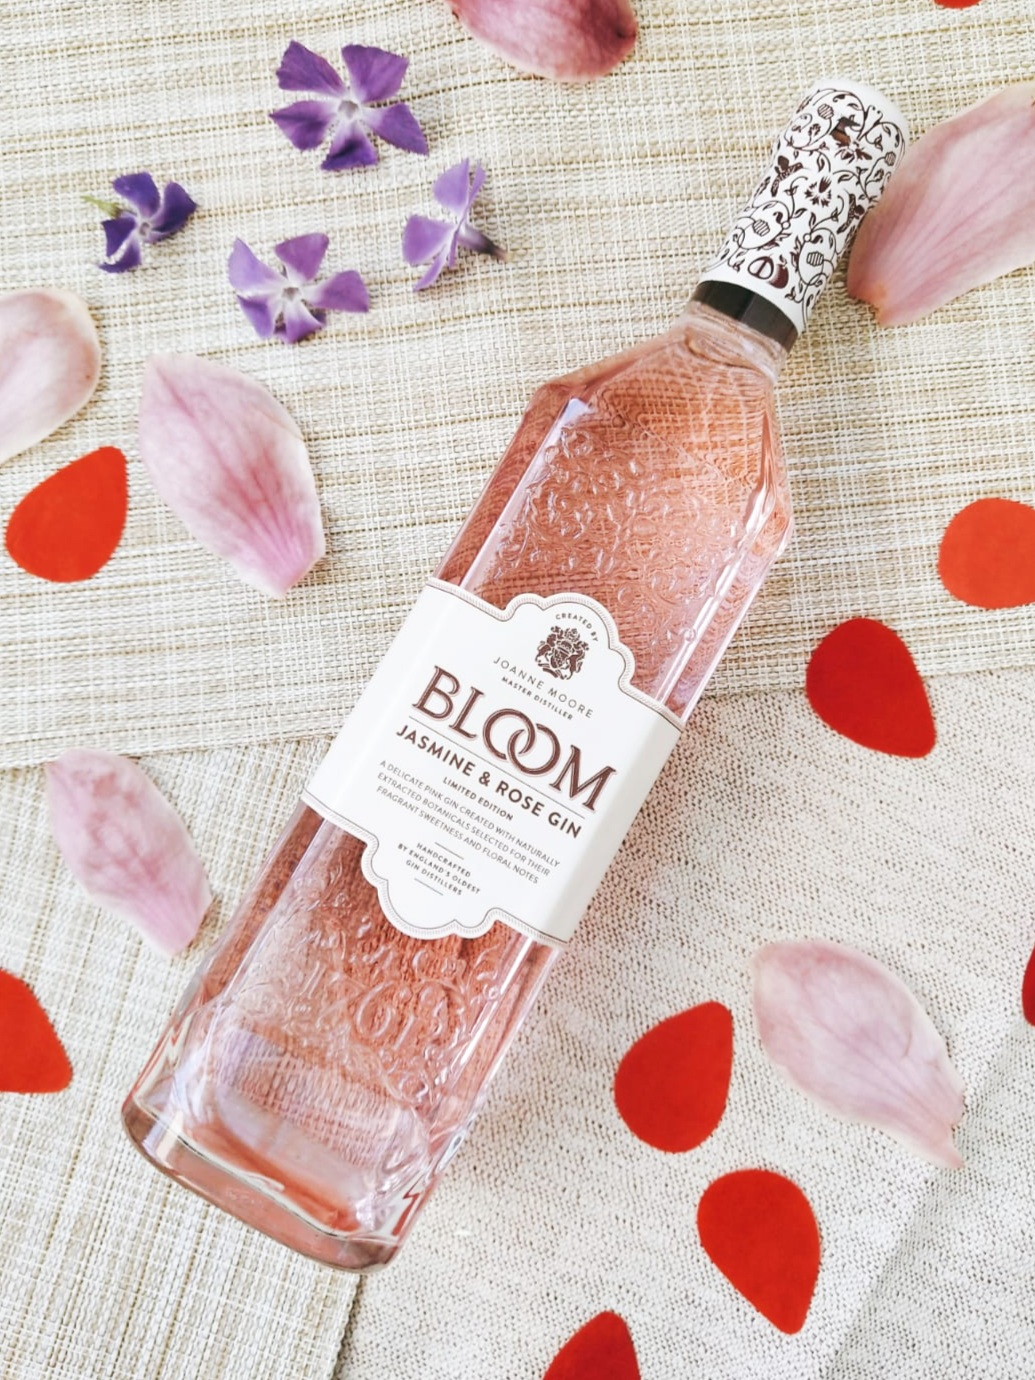 Bloom spirits gin review